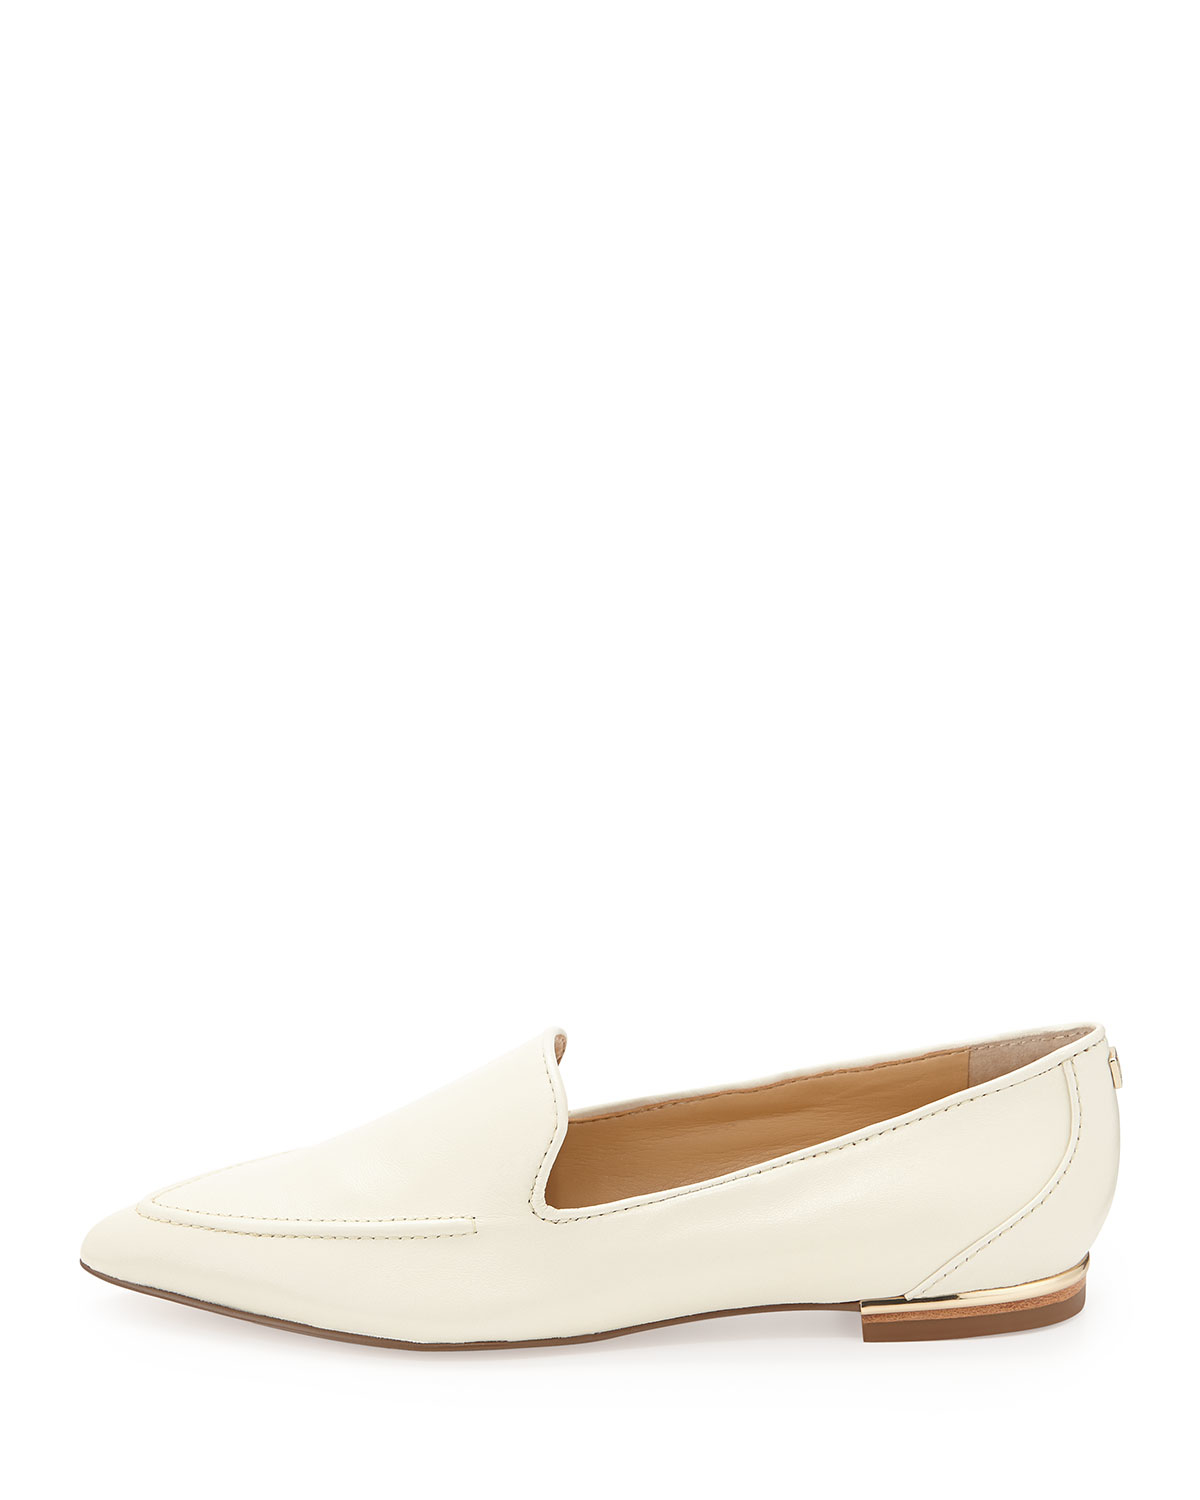 Ivanka Trump Zariner Pointed-Toe Leather Flat in White (IVORY) | Lyst